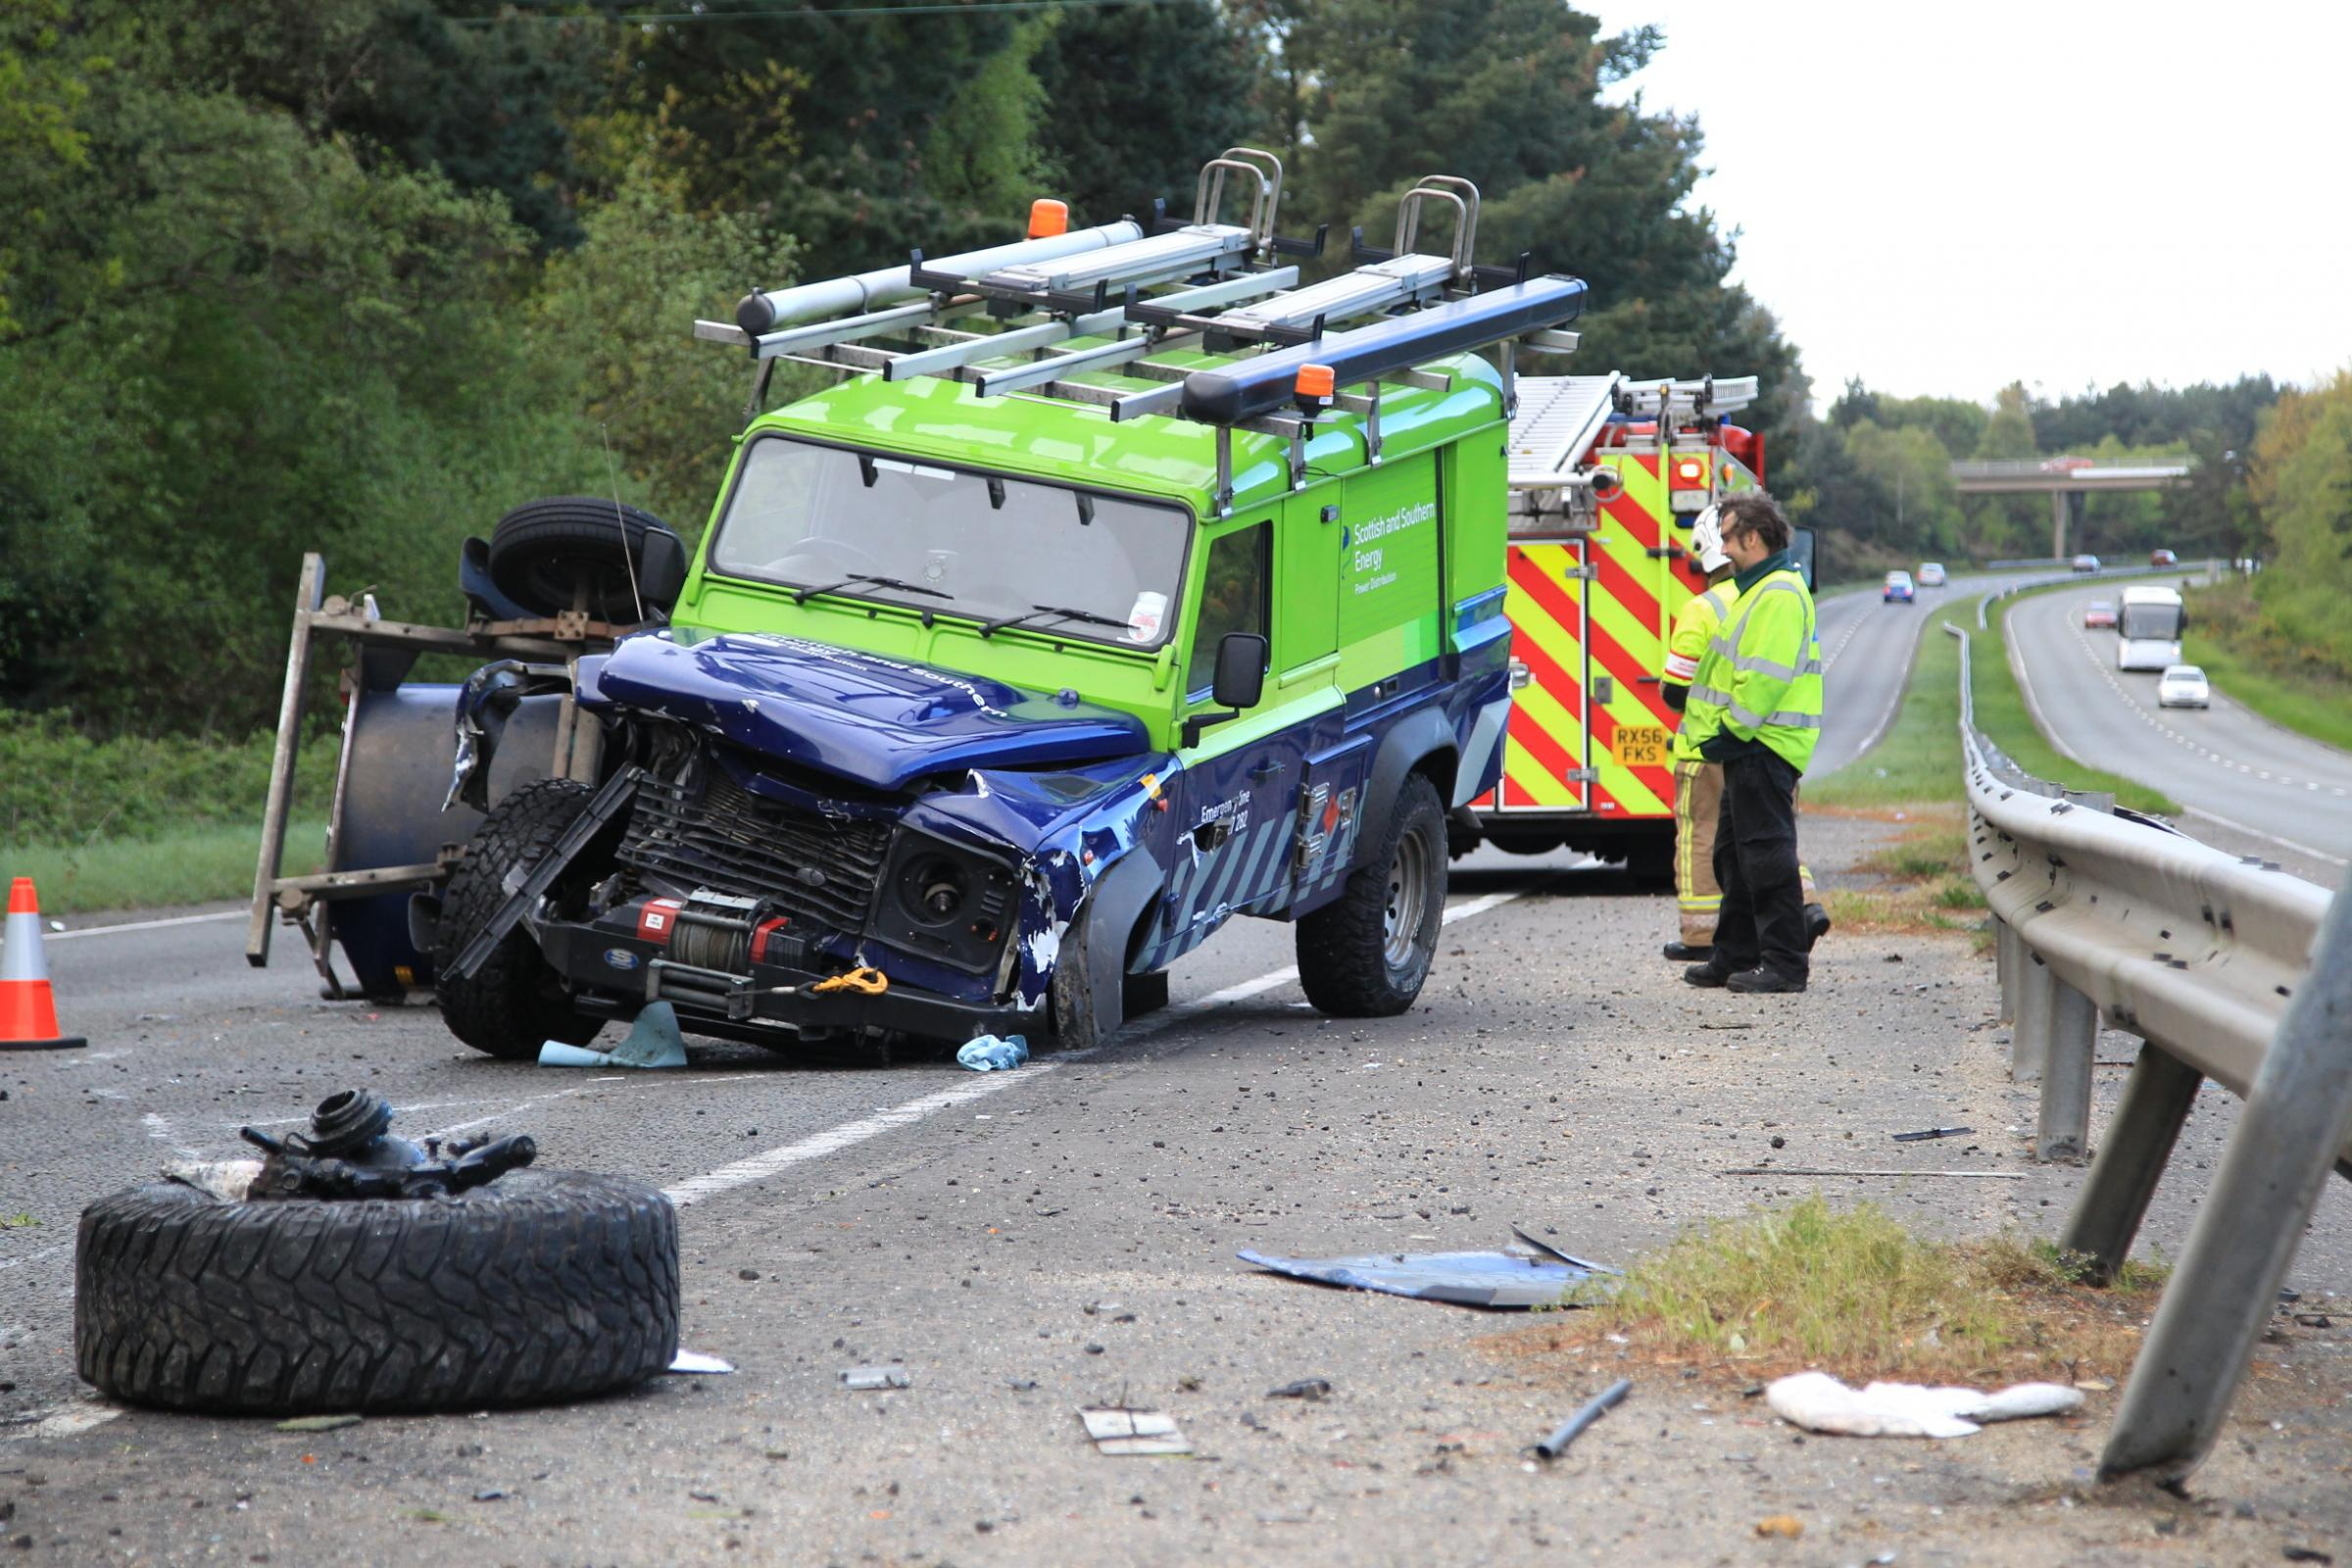 UPDATE: A338 out of Bournemouth shut for hours after vehicle and trailer overturns